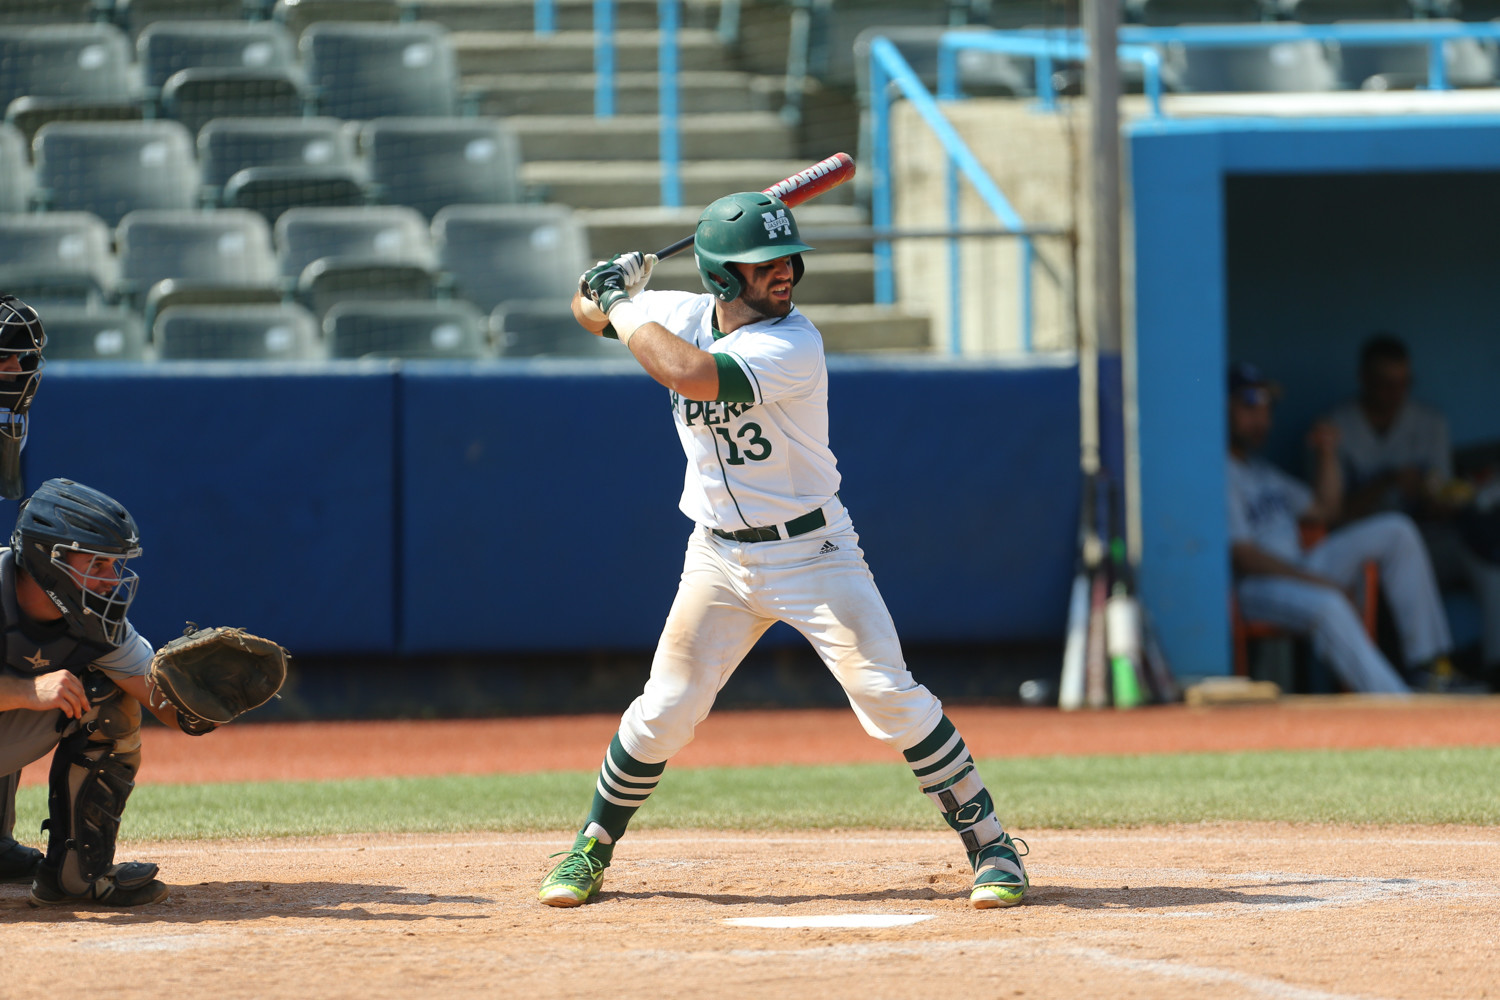 Manhattan College catcher Fabian Peña, picked by Baseball America newspaper as the top pro prospect in the Metro Atlantic Athletic Conference, is enjoying another scintillating season with the Jaspers — one that could be his last.